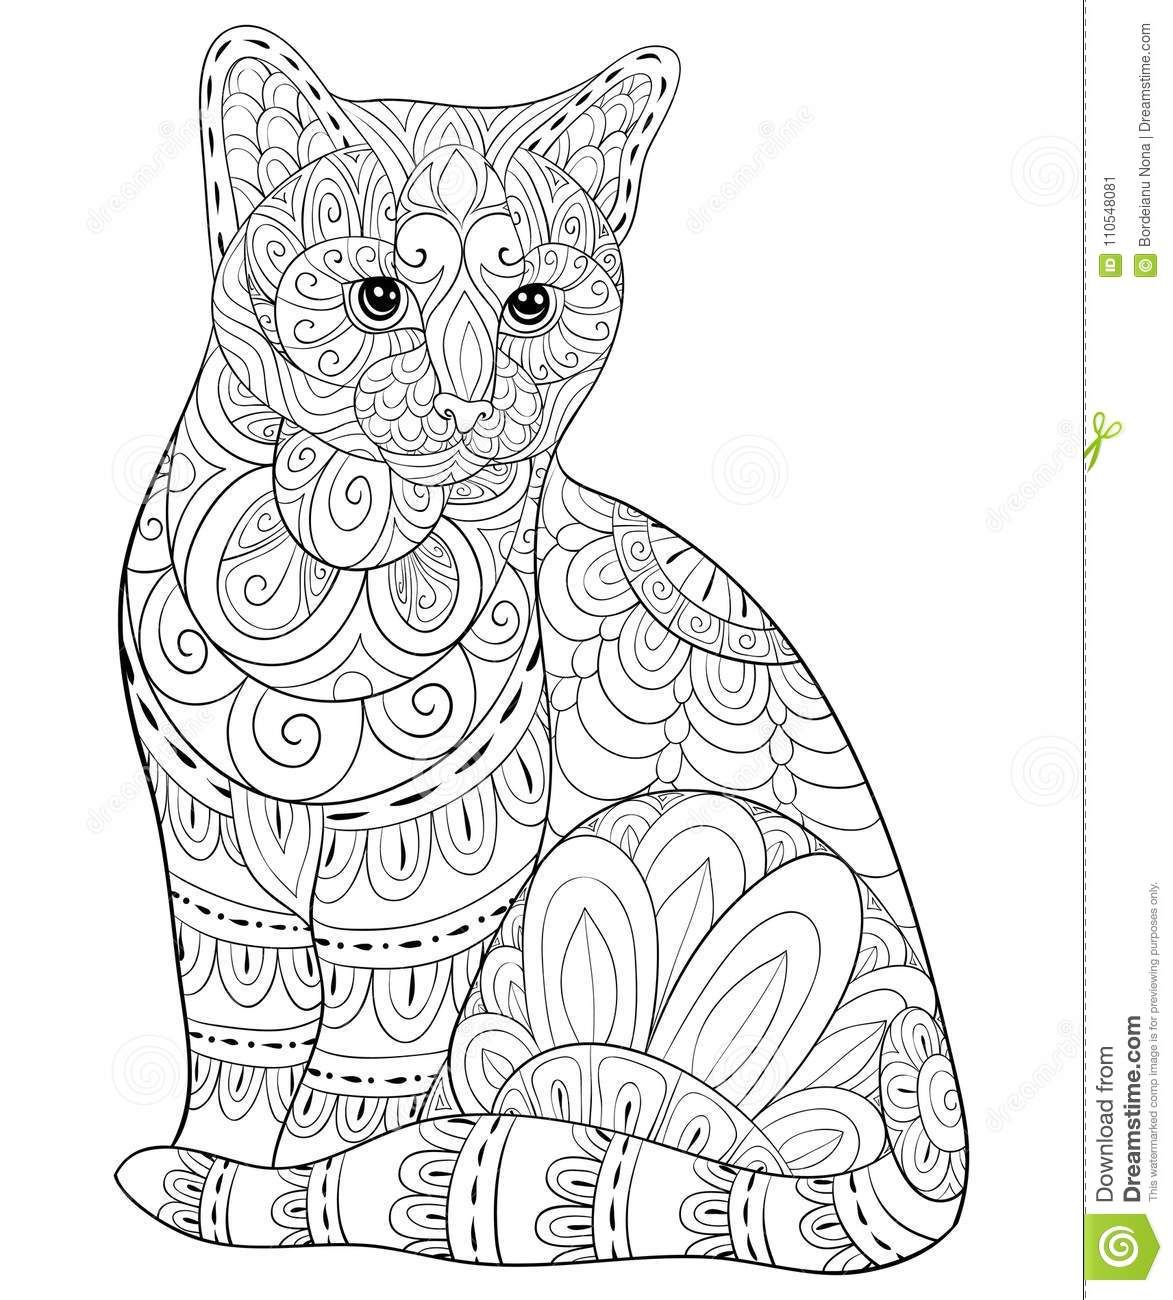 Illustration About A Cute Cat With Floral Ornamentson The Background For Relaxing Poster Design Wallp Cat Coloring Book Cat Coloring Page Animal Coloring Pages [ 1300 x 1173 Pixel ]